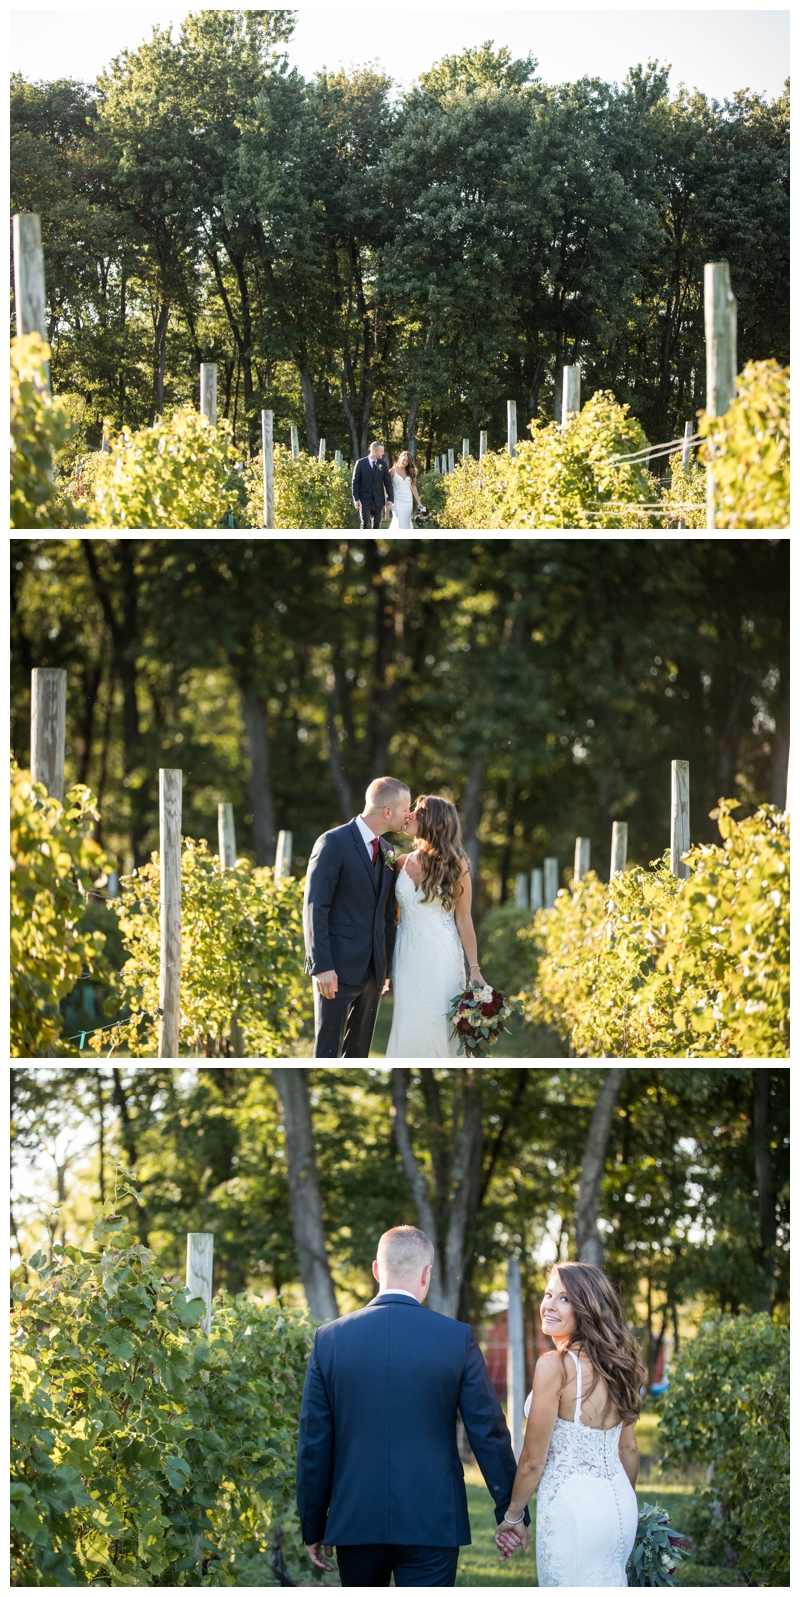 unionville-vineyards-wedding-styled-pink-photography-11.jpg